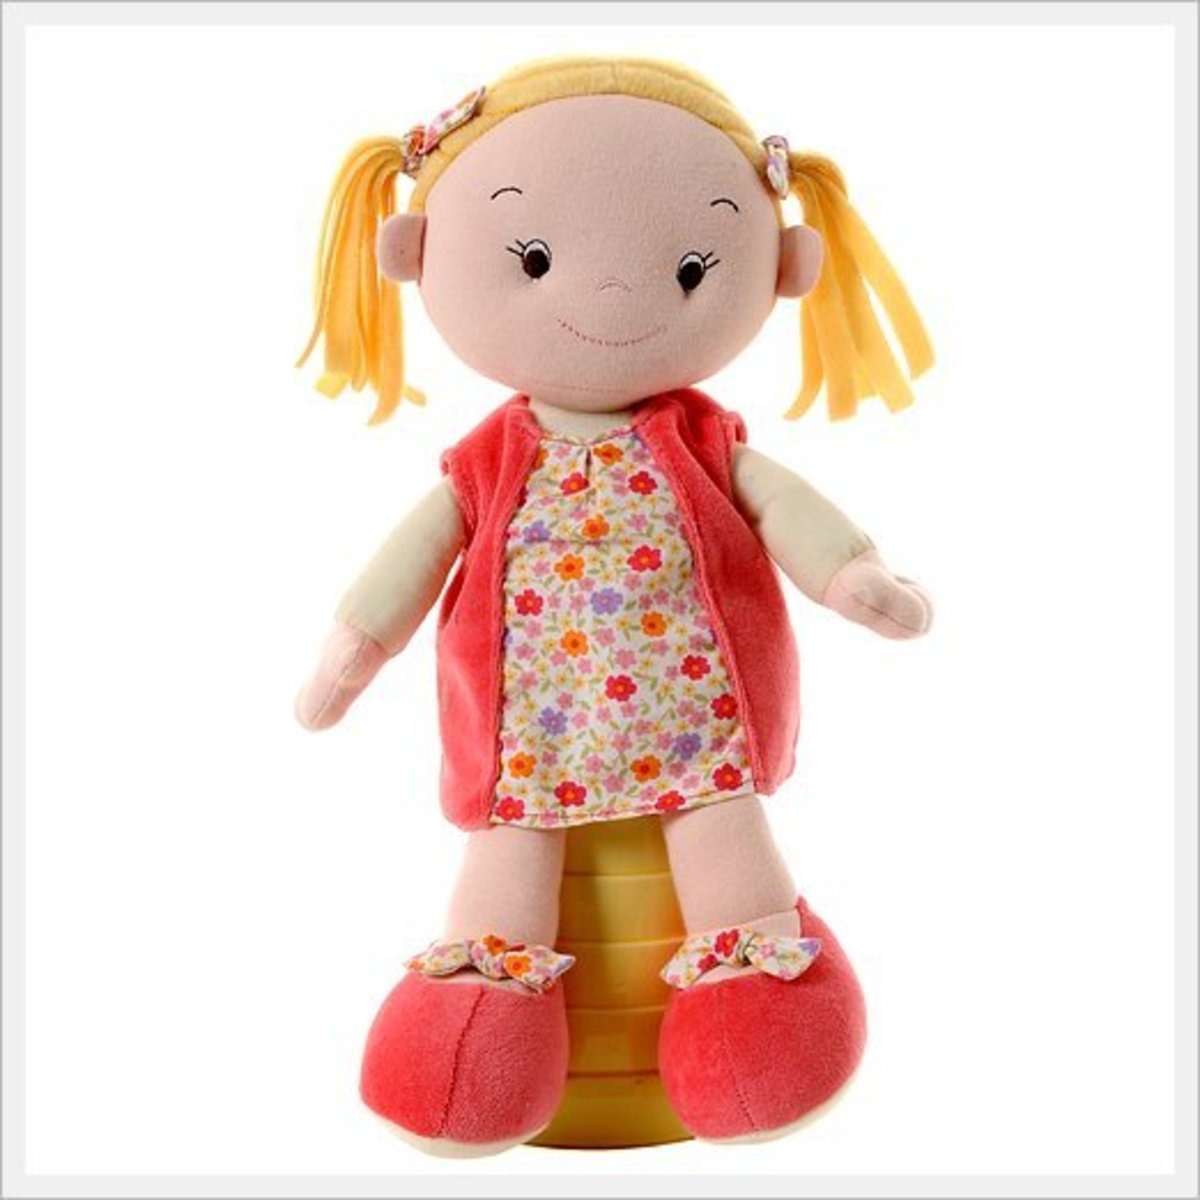 A rag doll toy can be any shape, size, type or configuration that you desire. There is no hard and fast rule as to how one should look.